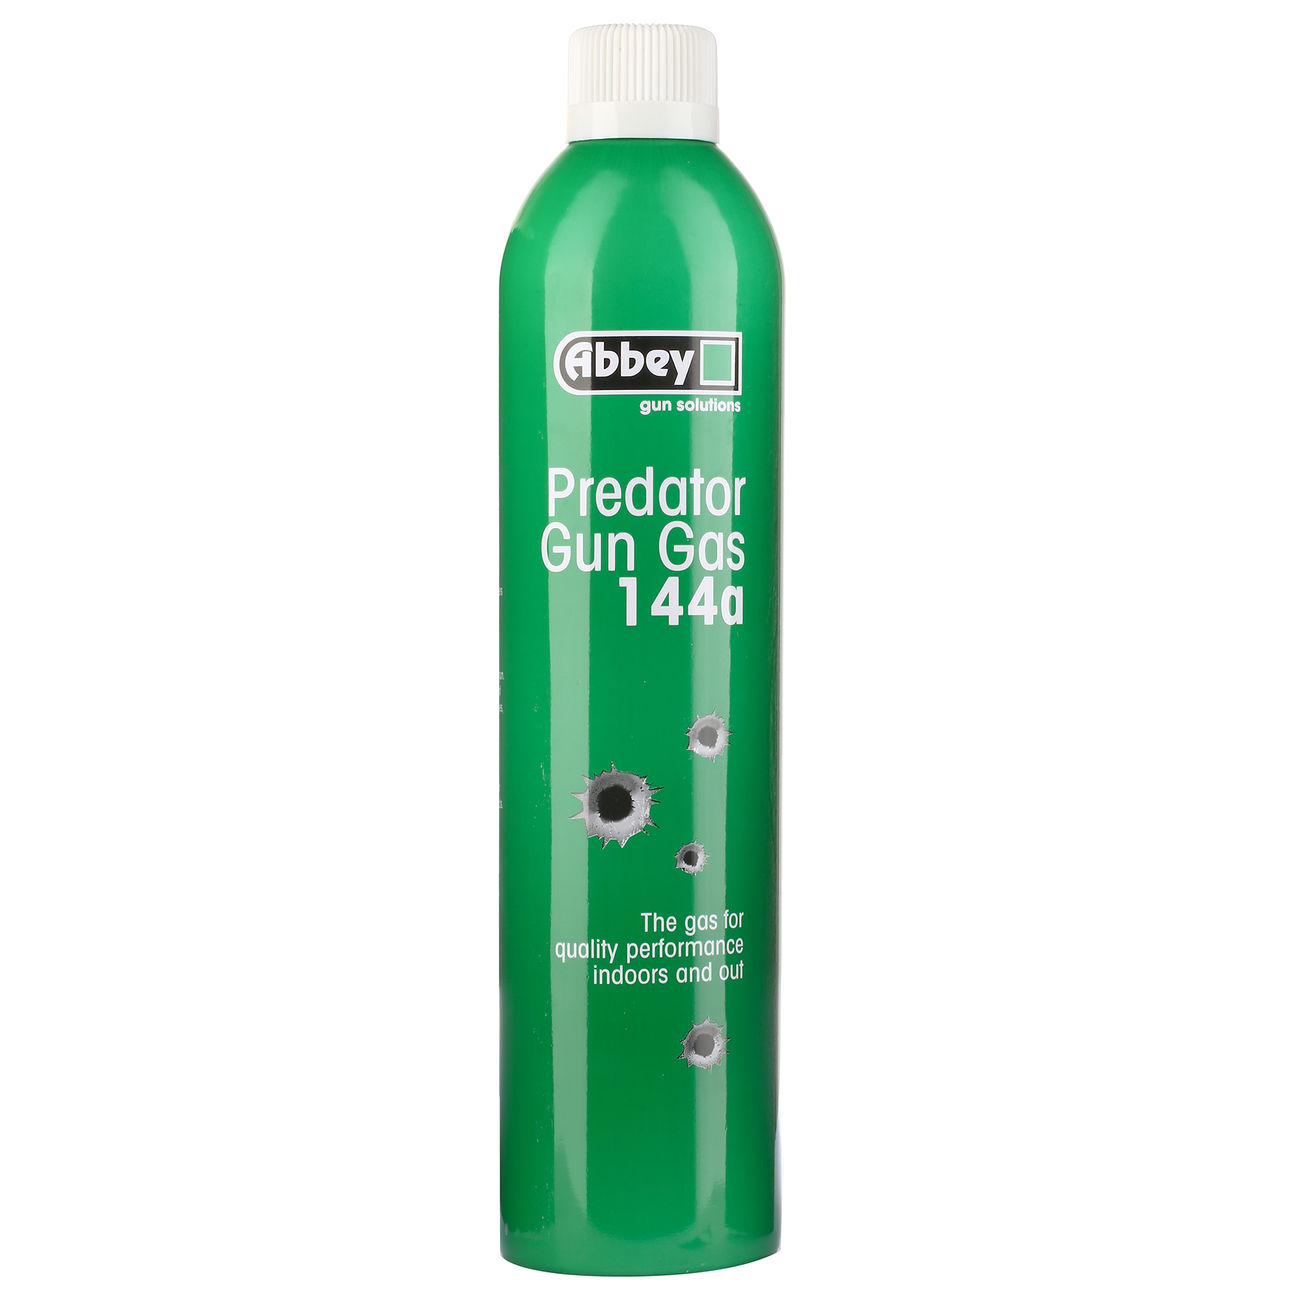 Abbey Predator Gun Gas 144a Softairgas 700 ml 0